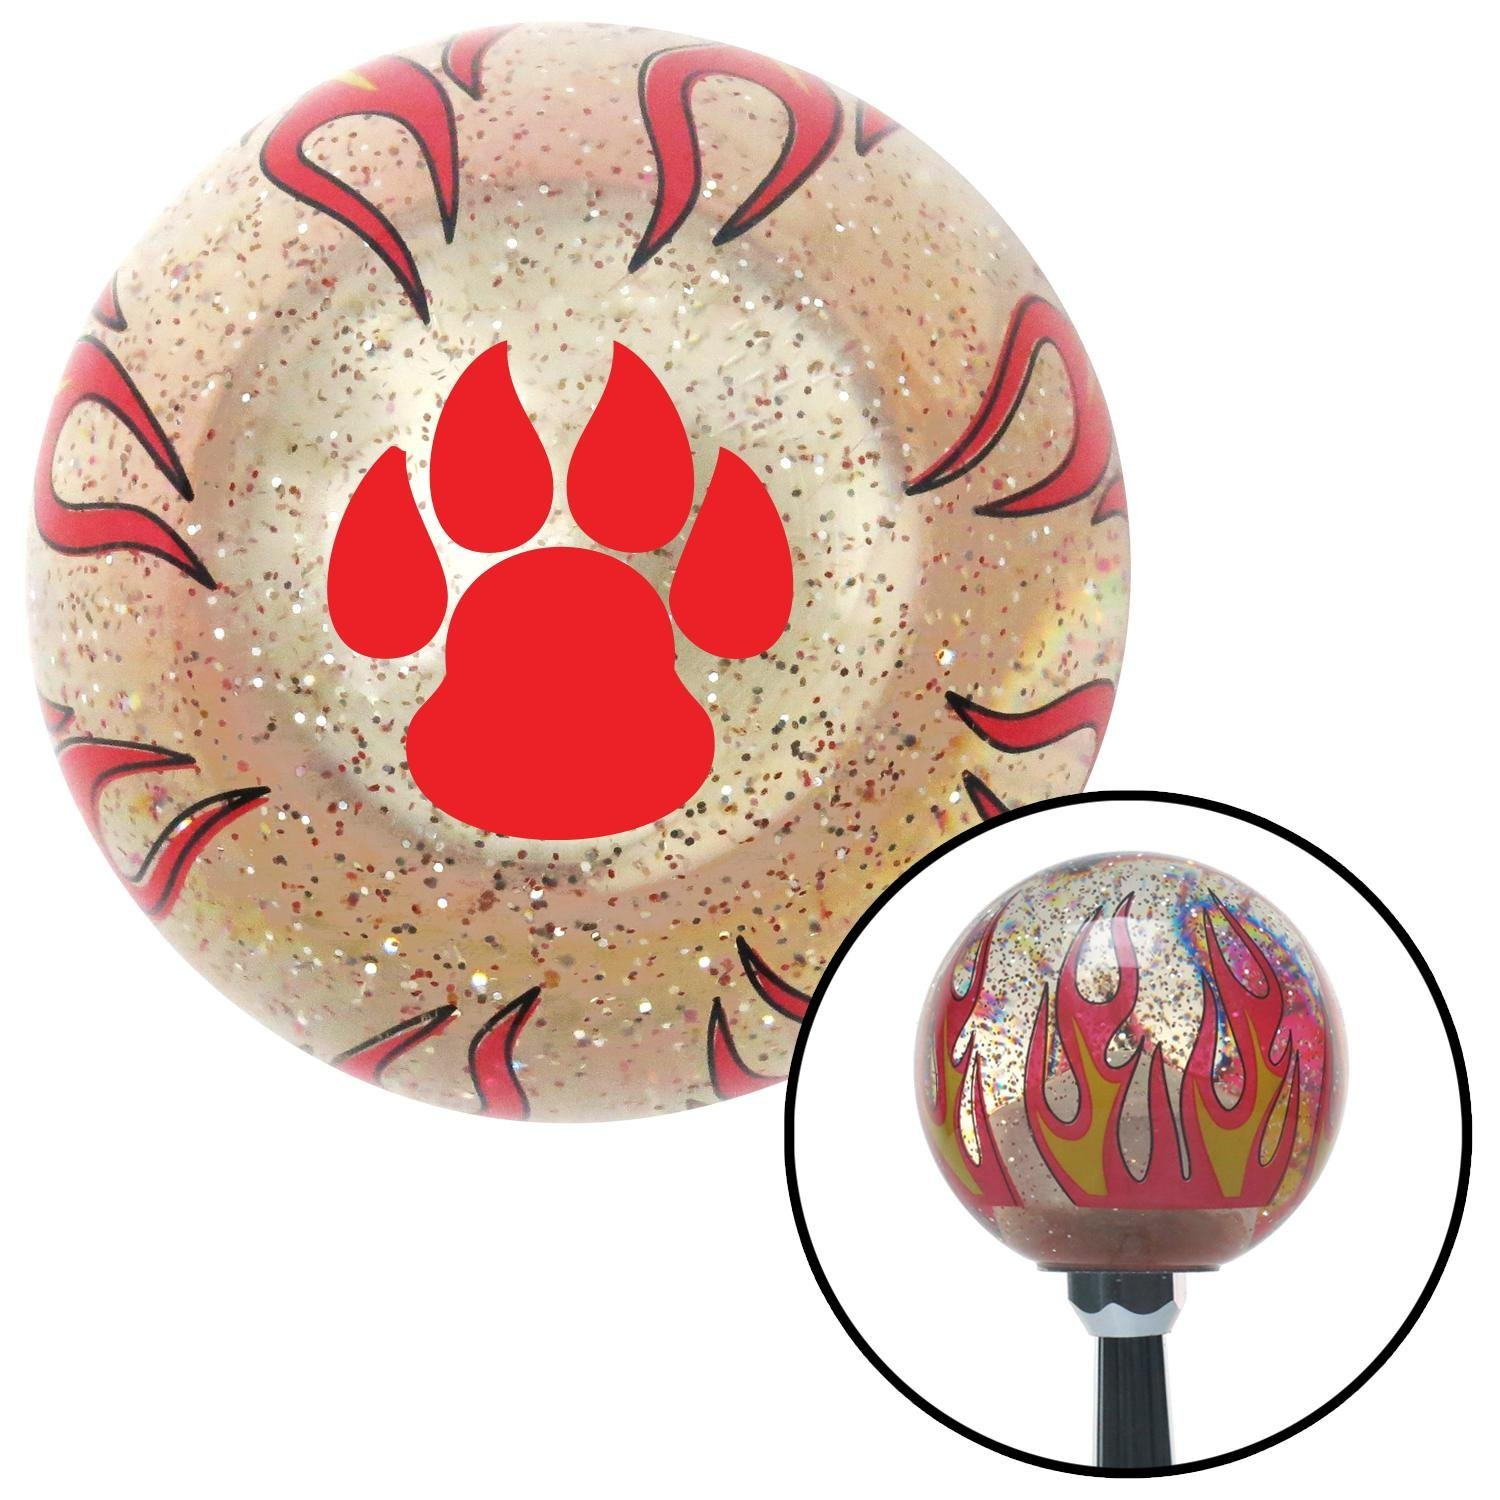 American Shifter 233893 Clear Flame Metal Flake Shift Knob with M16 x 1.5 Insert Red Pawprint Sharp